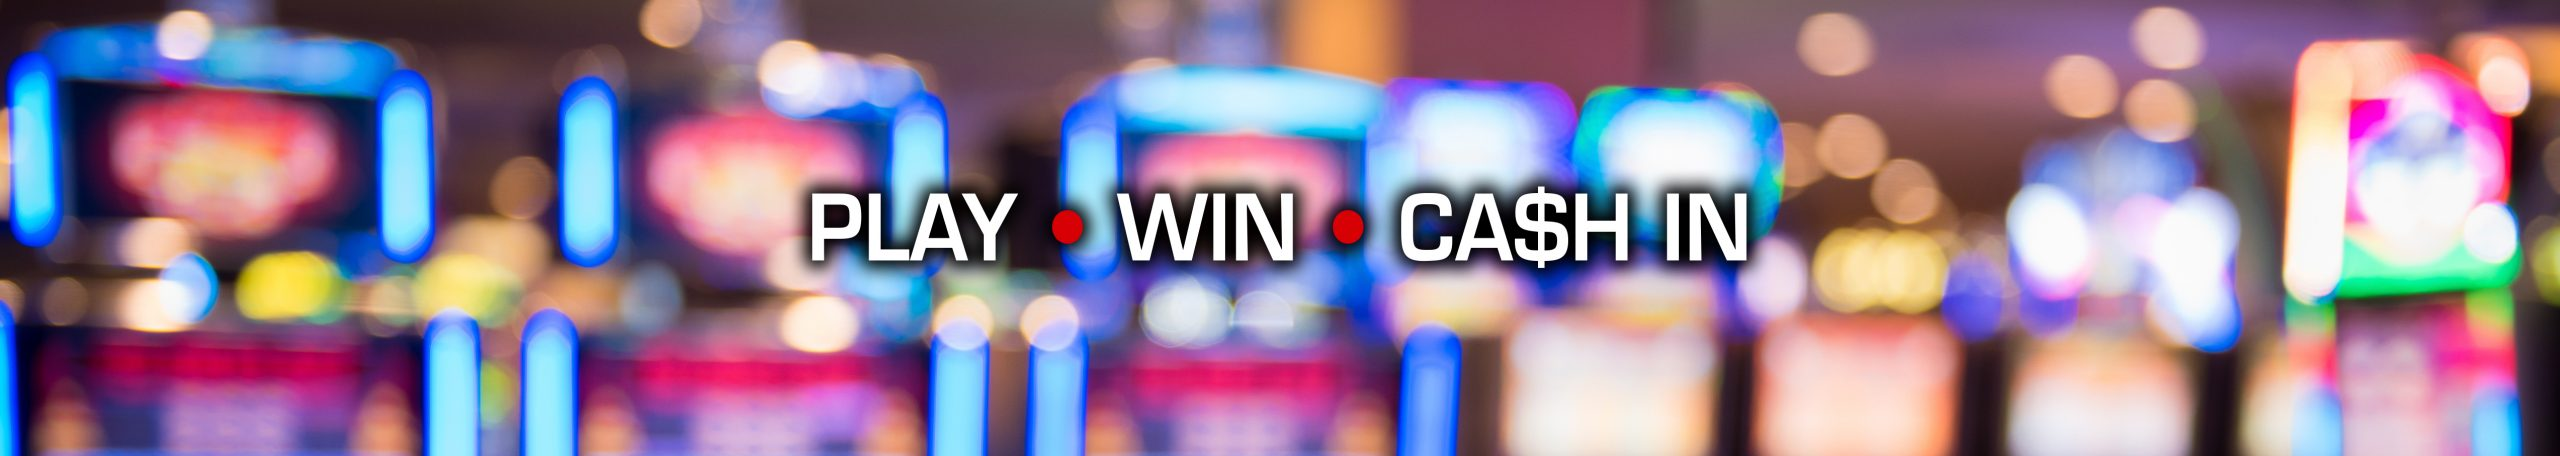 Play, Win, Cash In slogan with slot game background